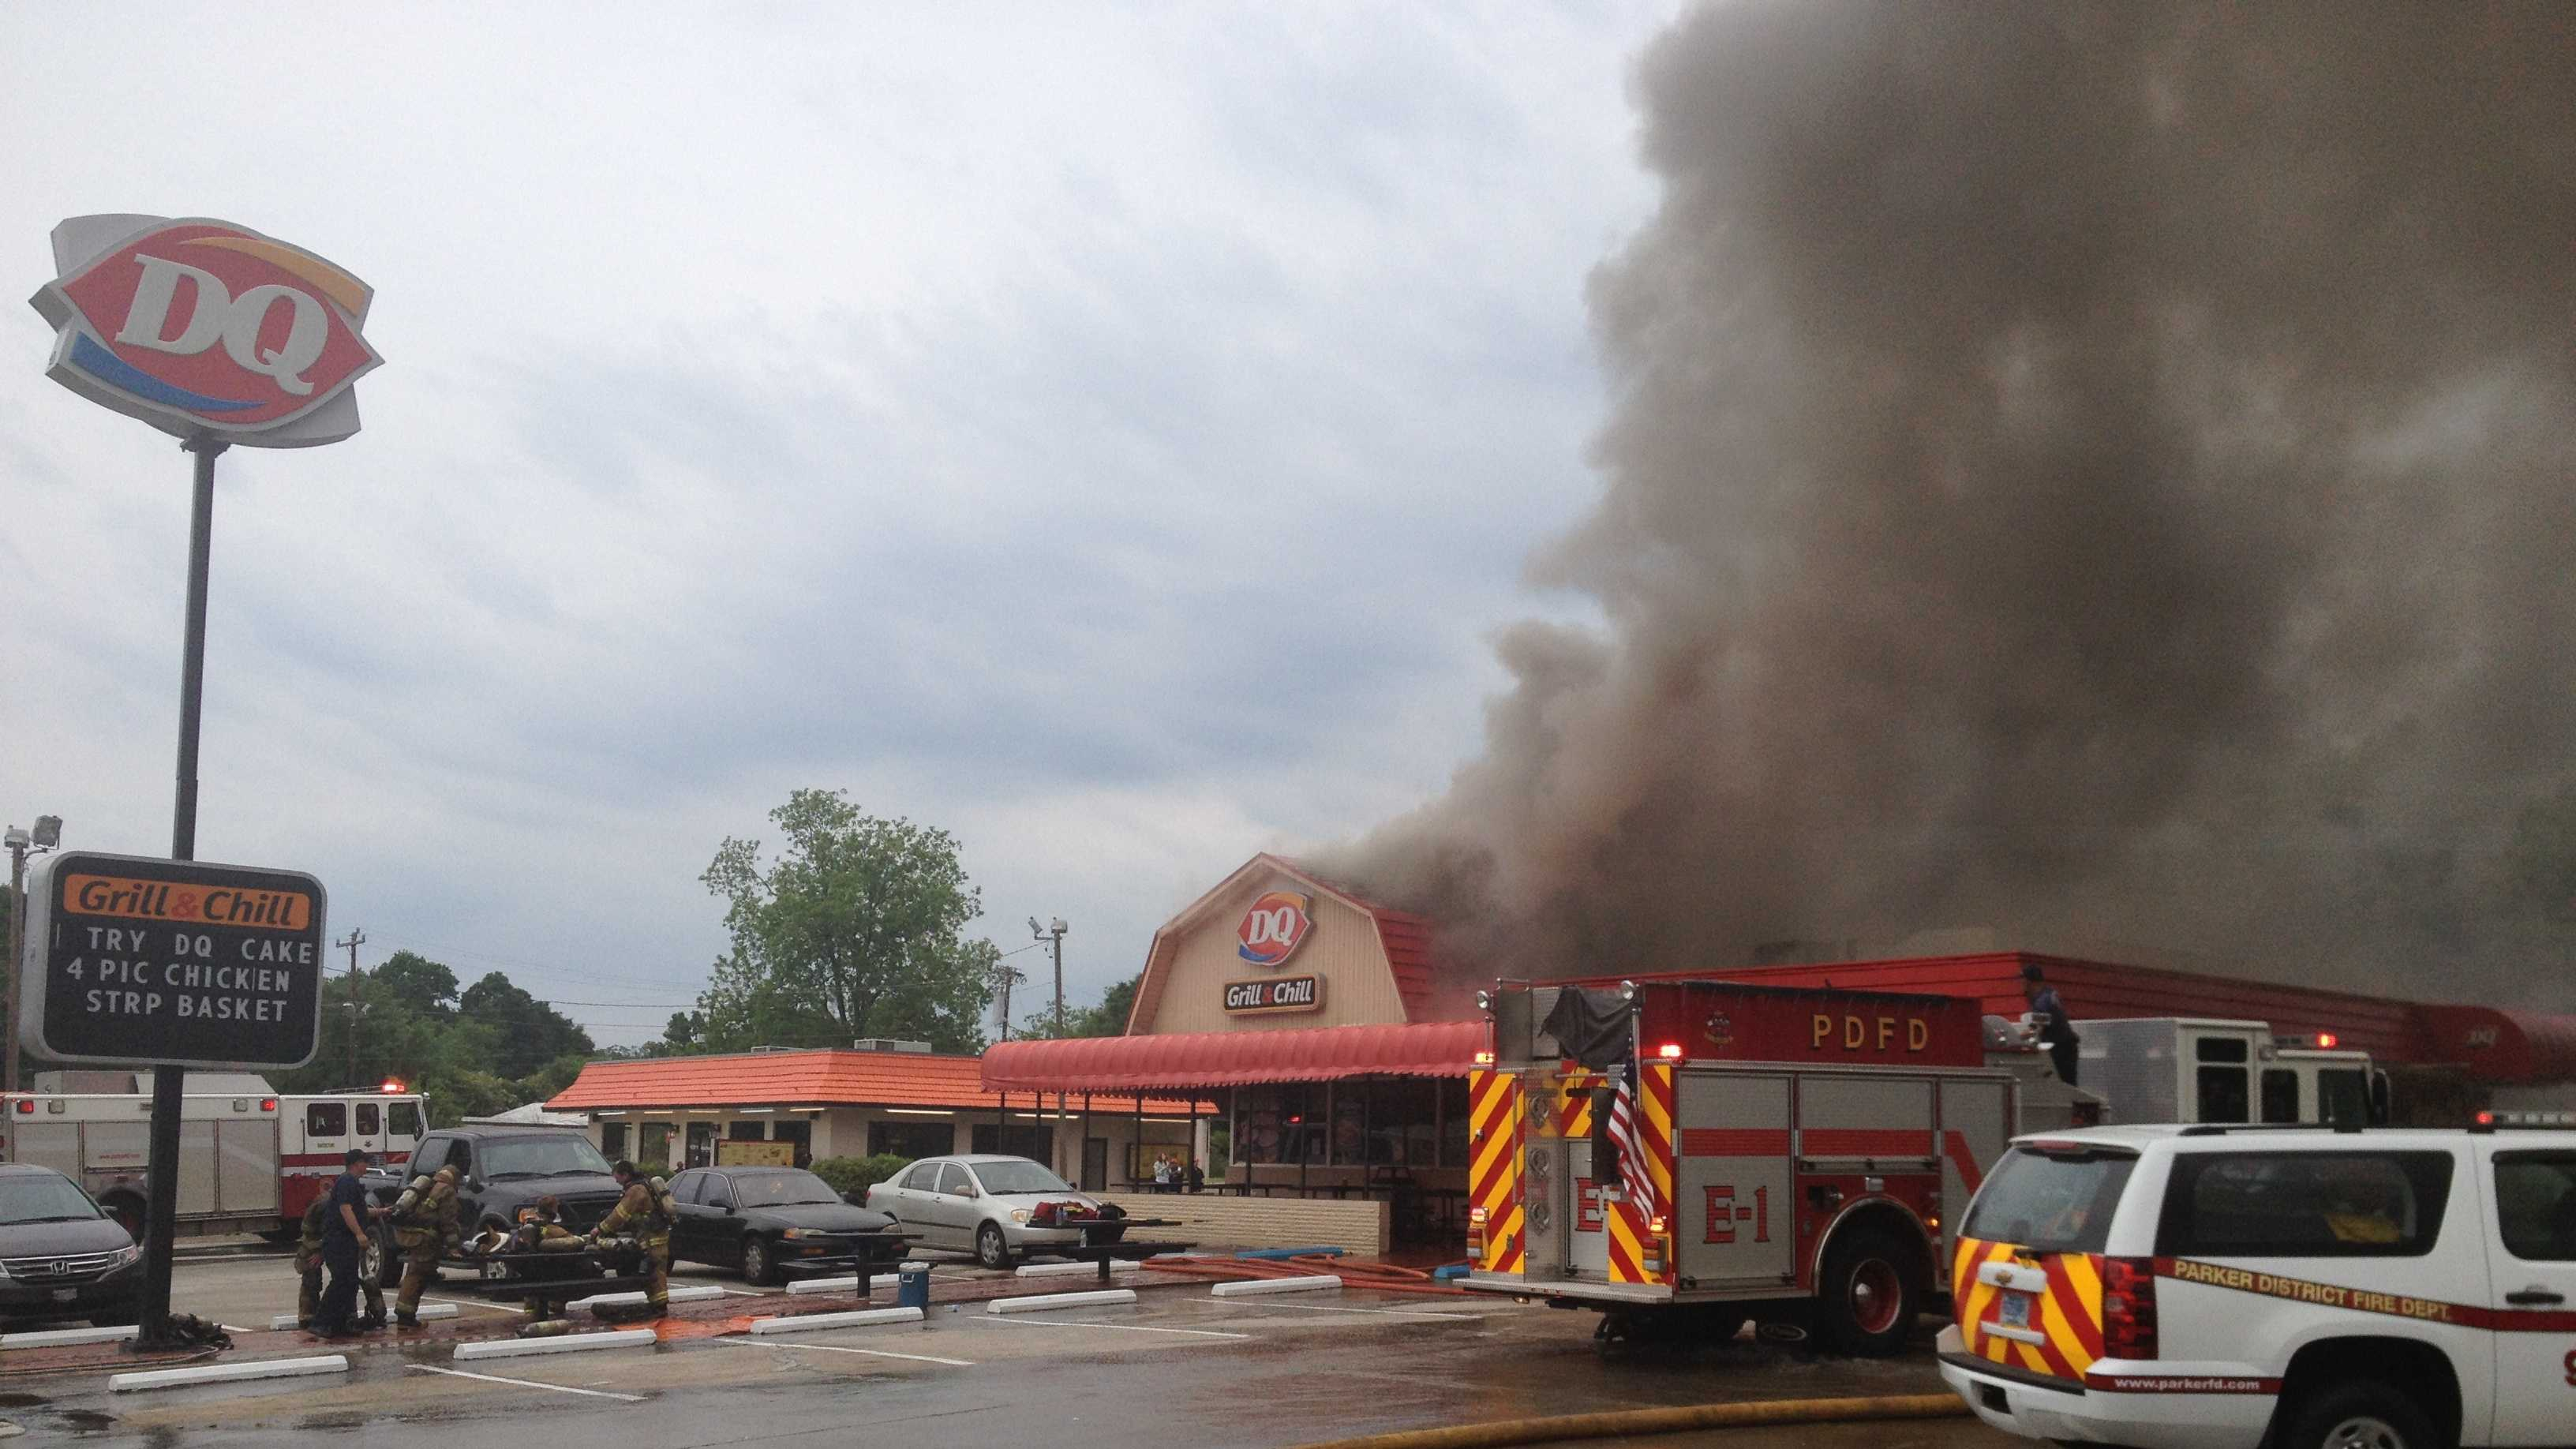 Firefighters responded to a fire at the Dairy Queen in Greenville Friday.